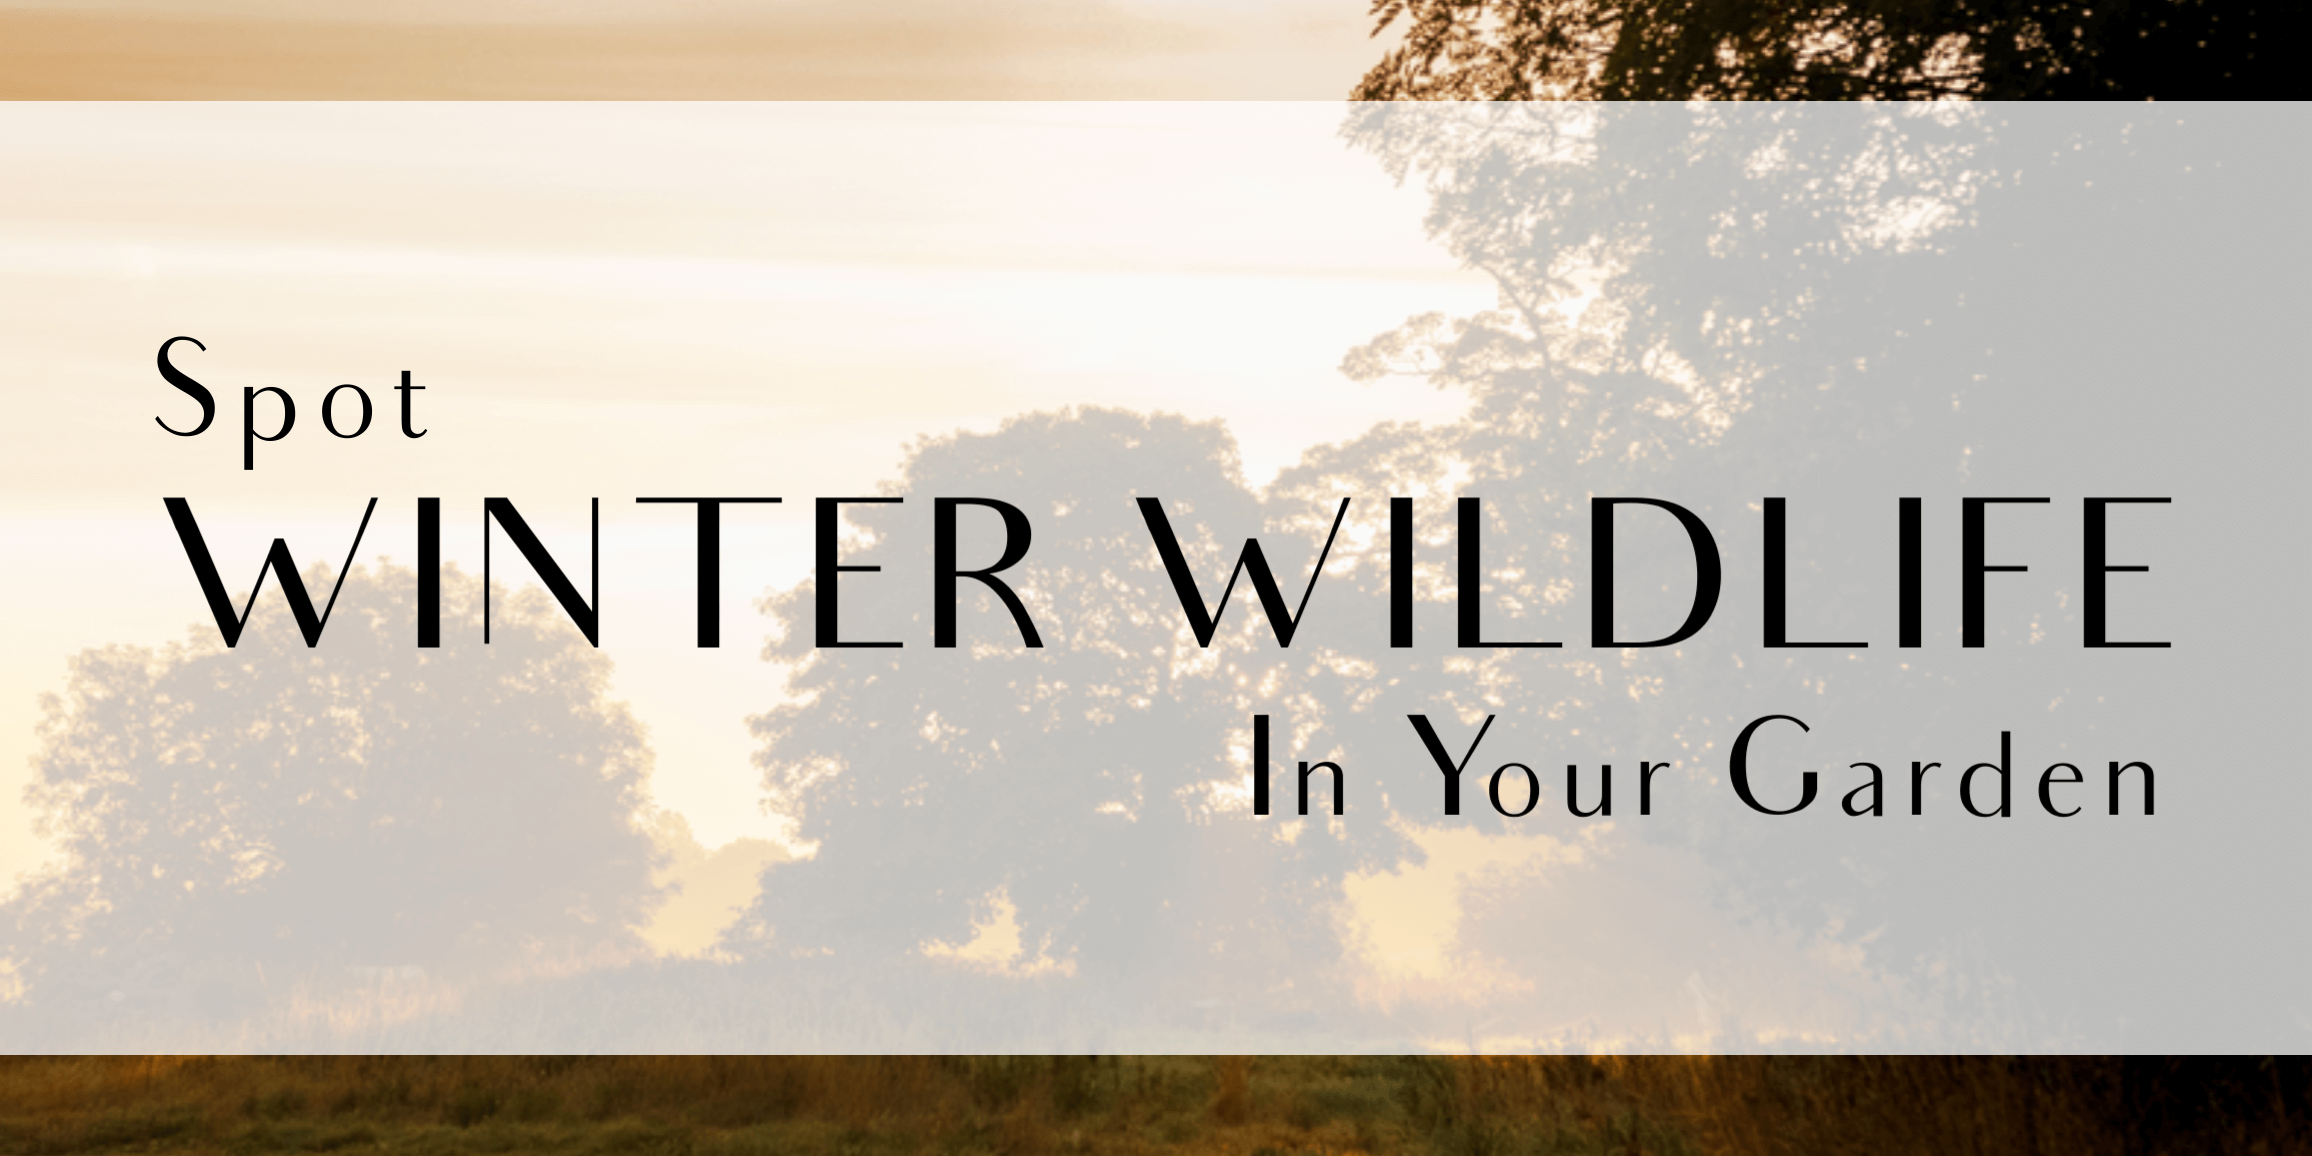 Spot Winter Wildlife in your Garden title